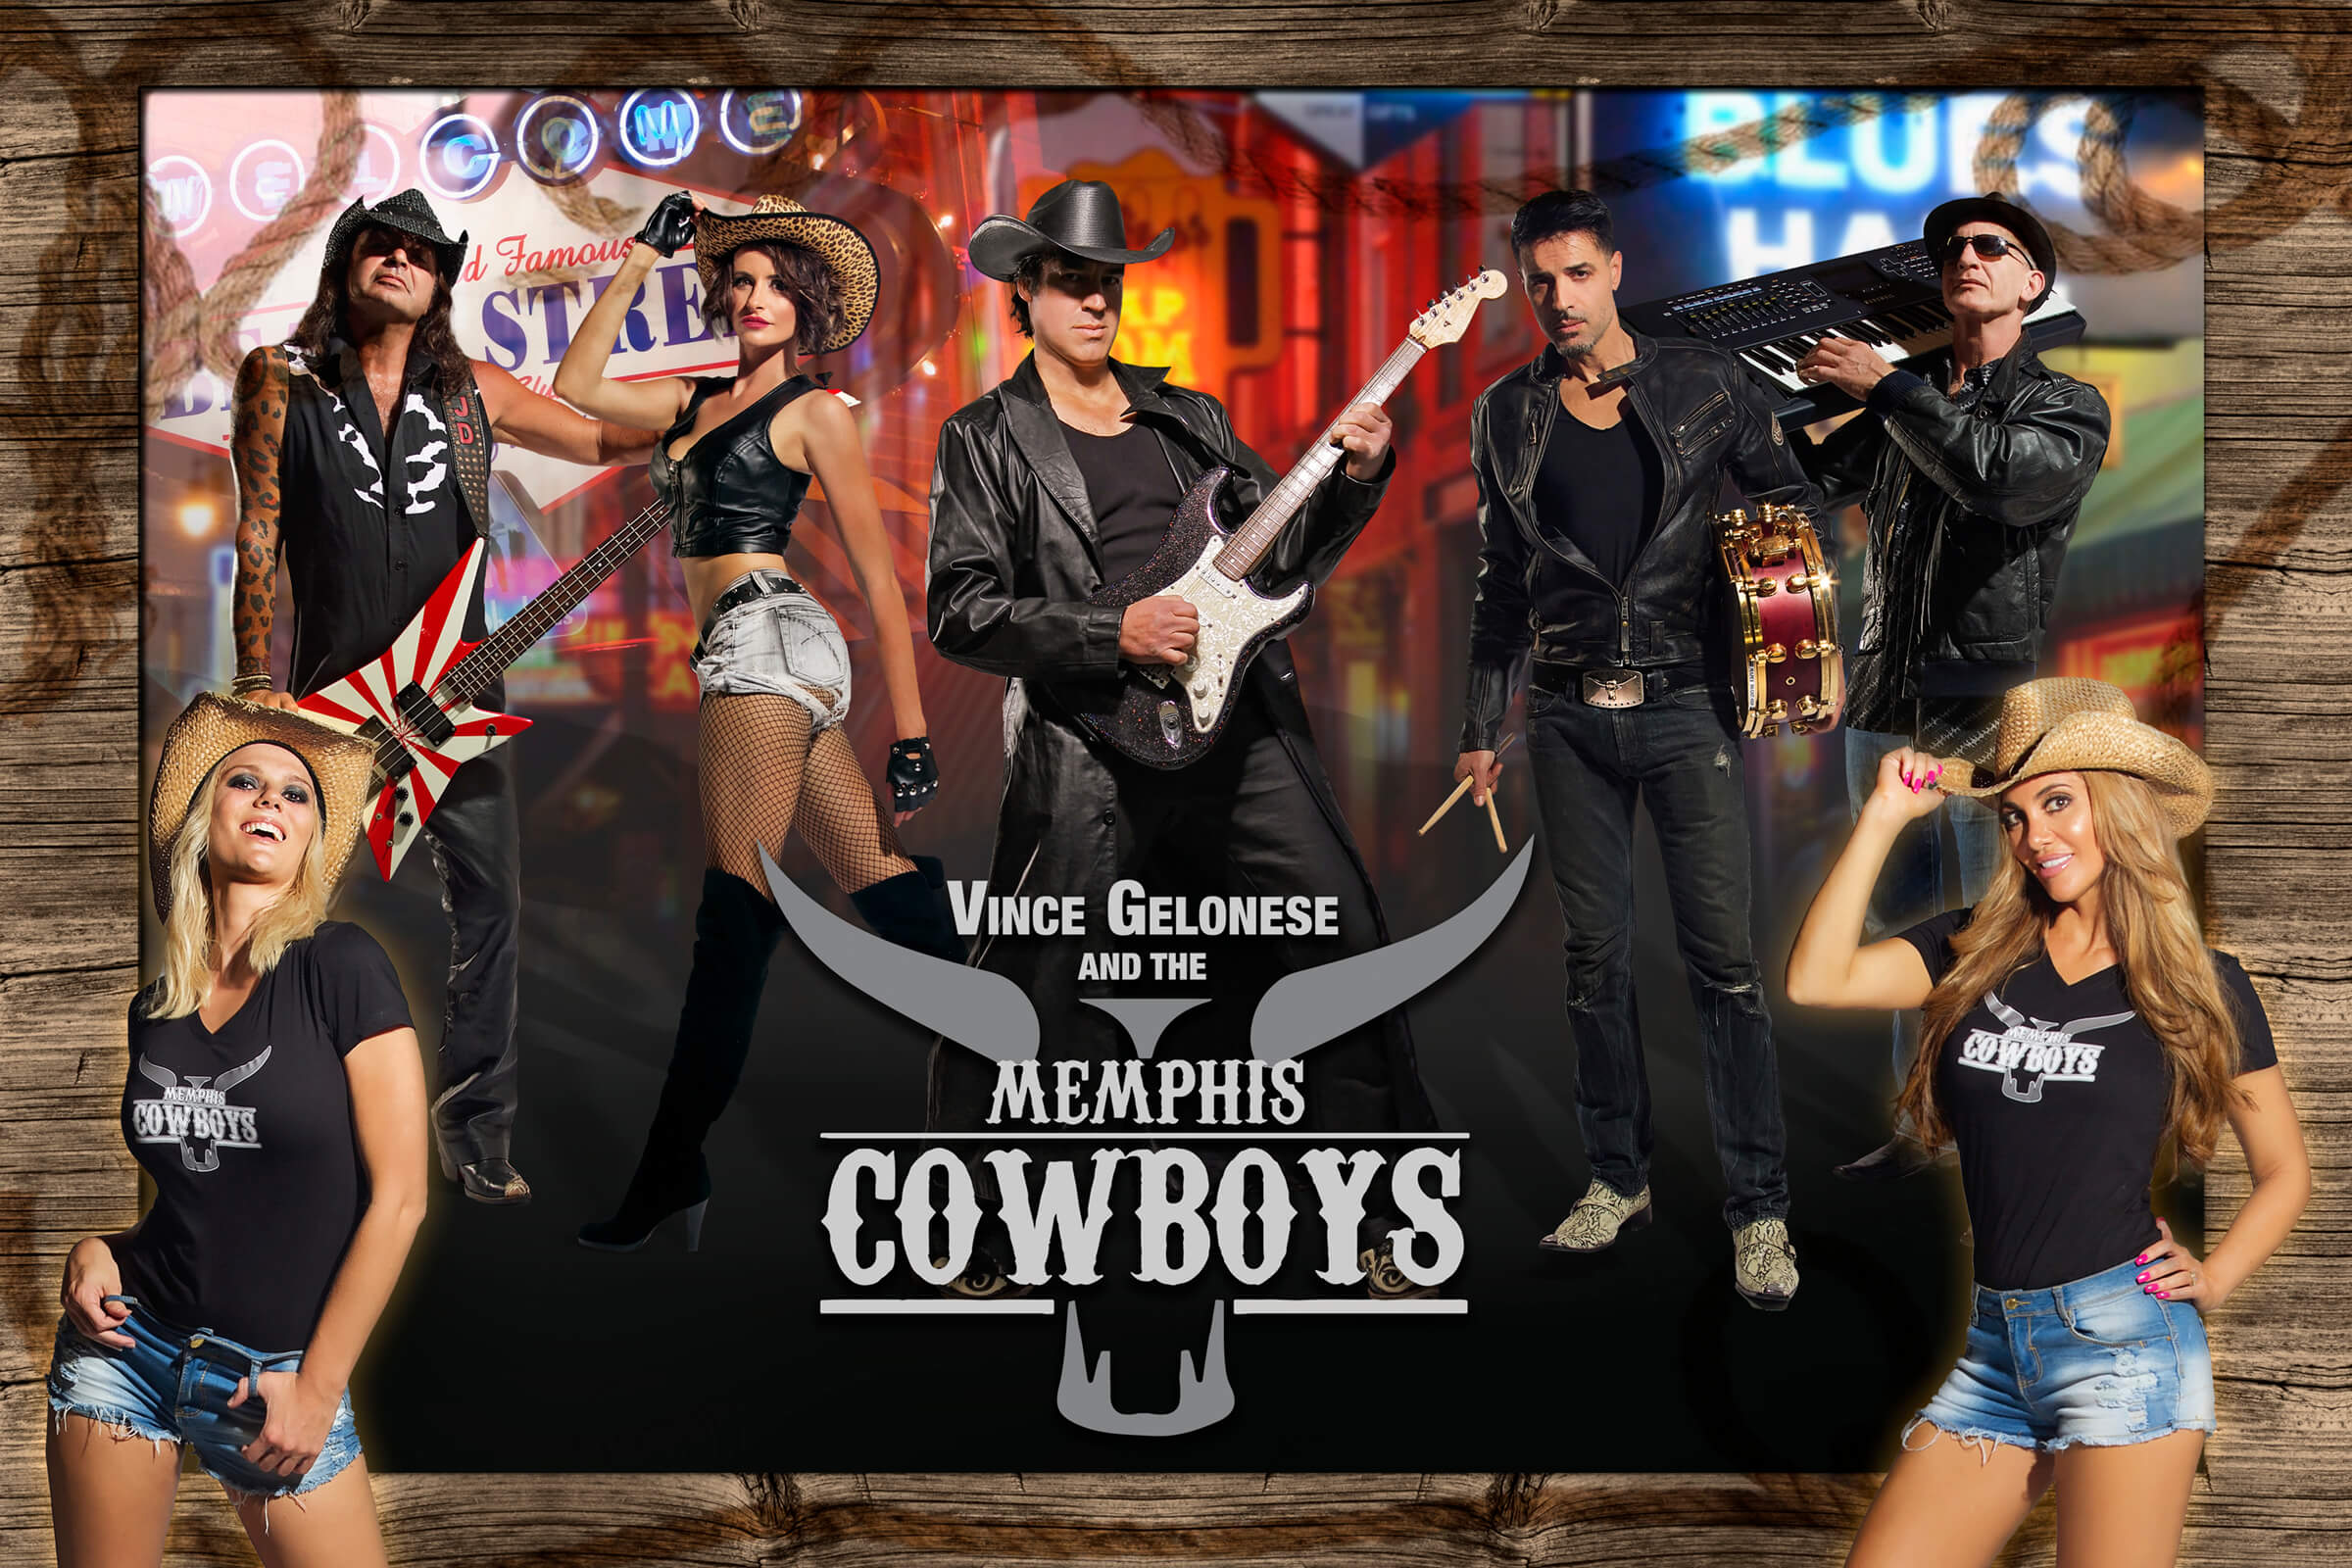 MEMPHIS COWBOYS_band_5 pc_WEB